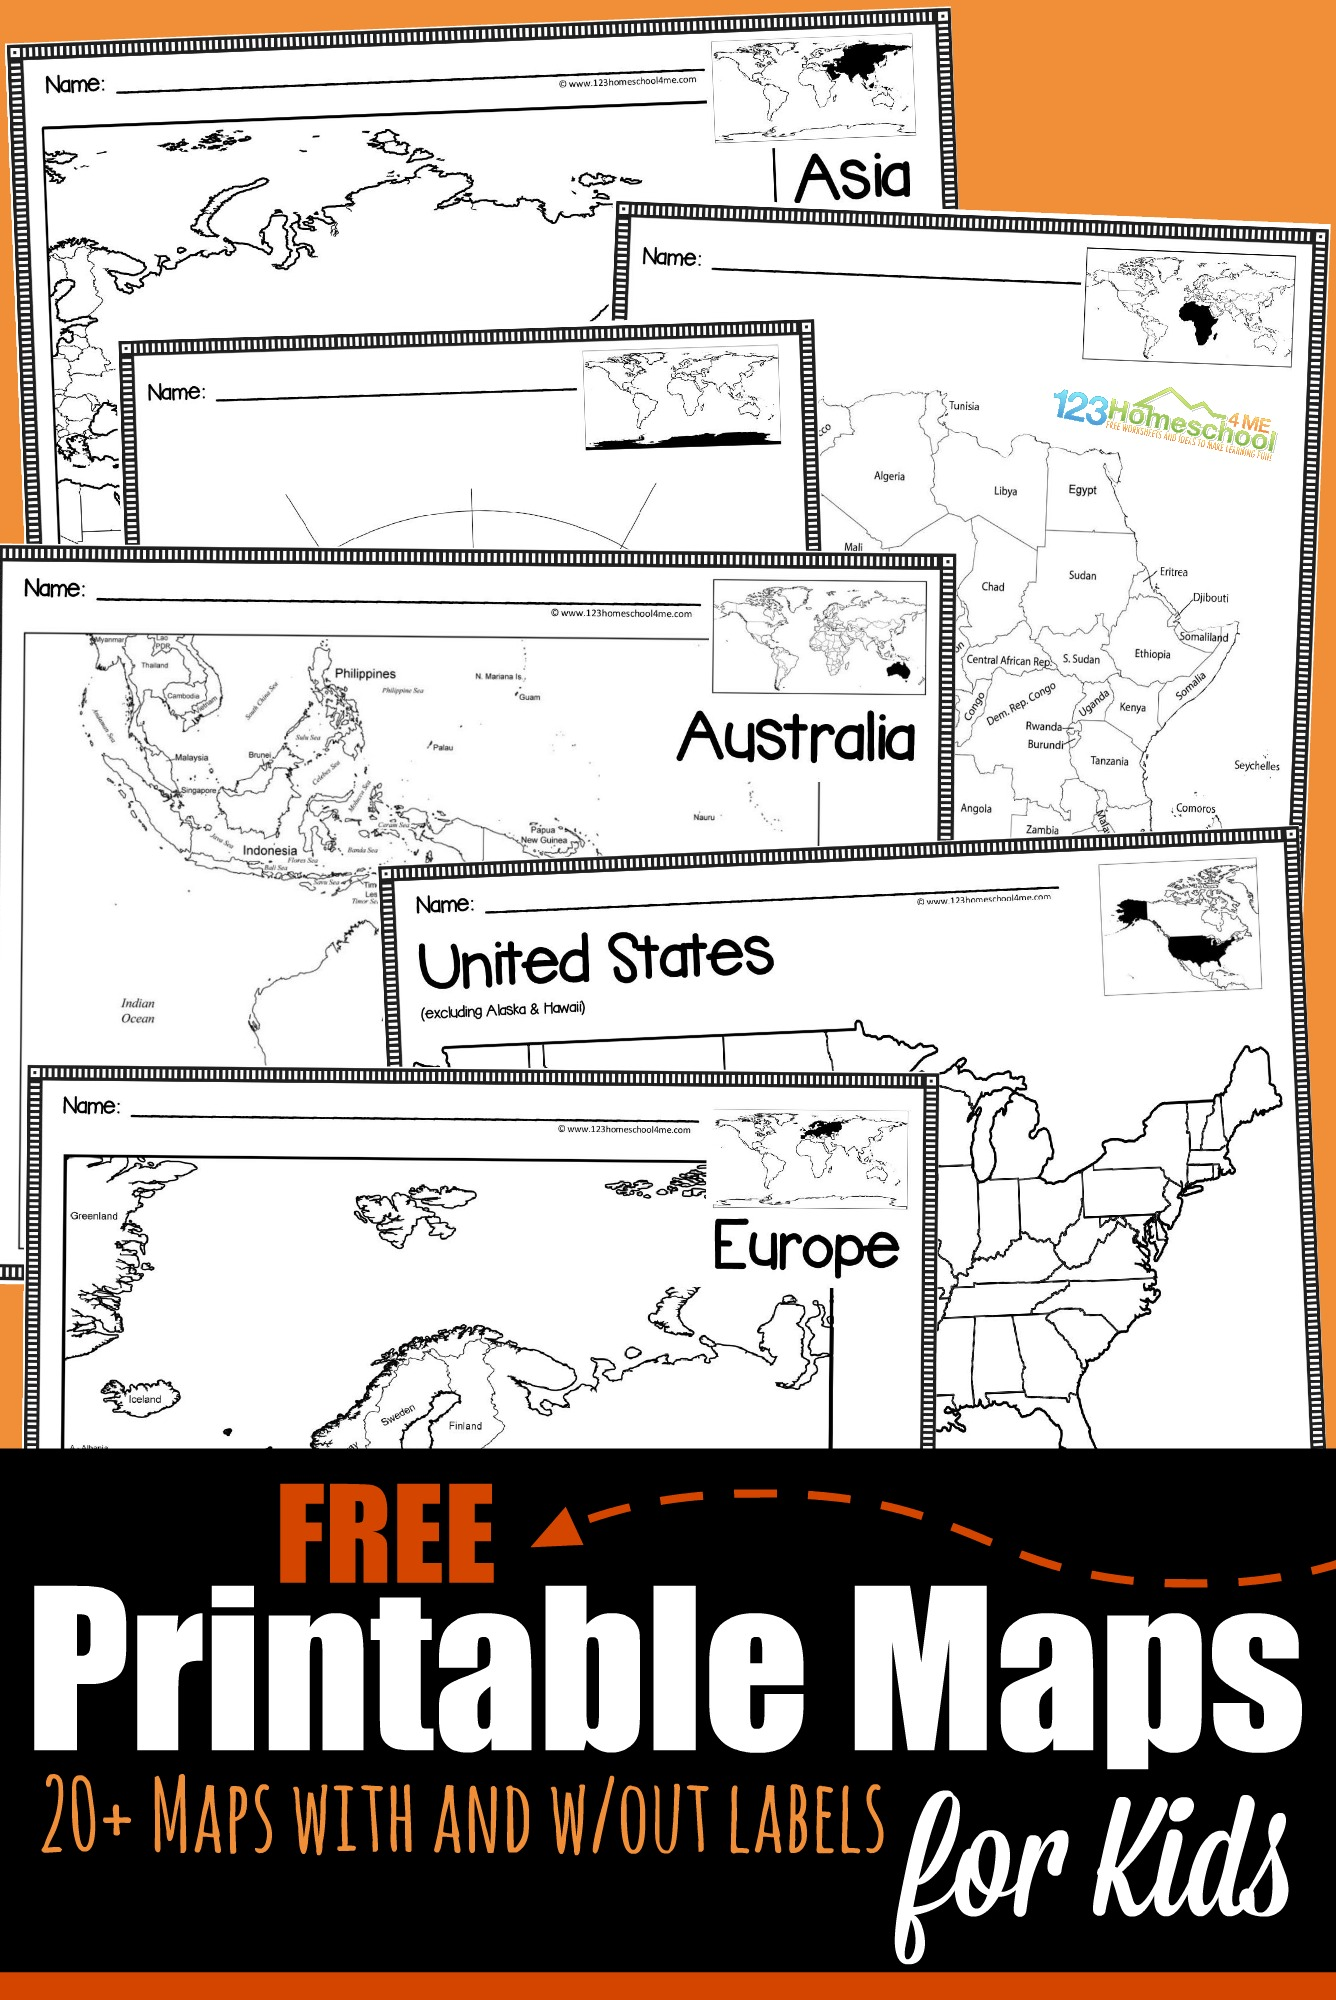 Whether you are learning about geography, countries around the world, world history,or just trying to show your kids the route you are taking on your next vacation, these printable maps for kidswill come in handy with preschool, pre k, kindergarten, first grade, 2nd grade, 3rd grade, 4th grade, 5th grade, 6th grade, 7th grade, jr high, and high school students.